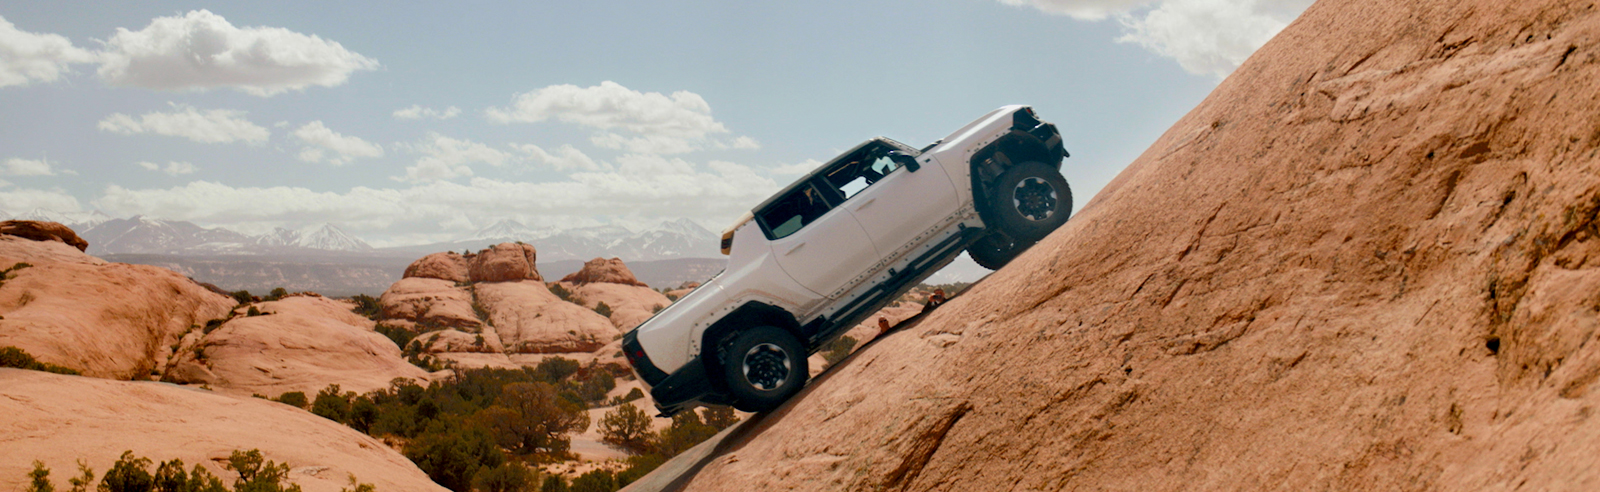 The GMC HUMMER EV Pickup is being tested on legendary off-road Moab trails